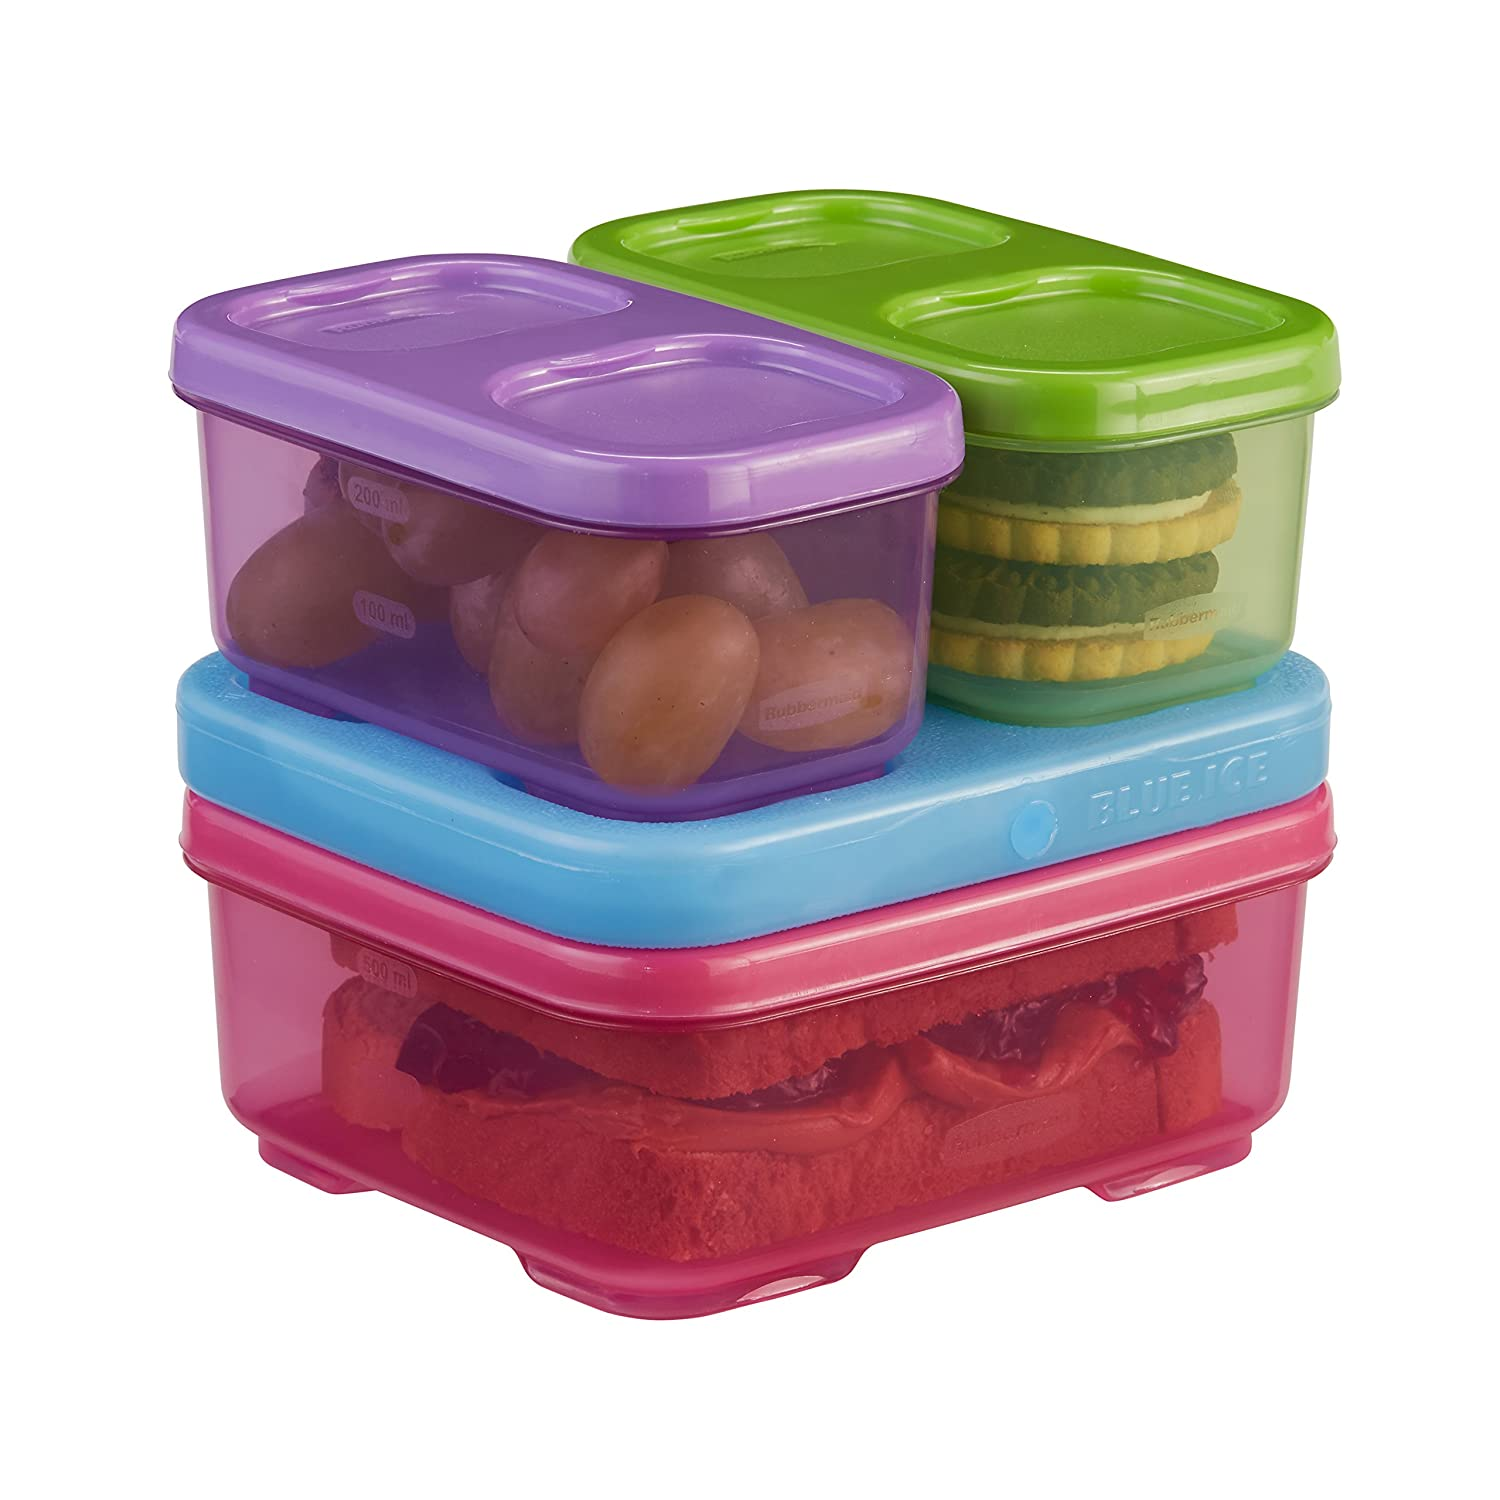 Rubbermaid LunchBlox Kids Pink Lunch Kit, Tall, Purple/Pink/Green